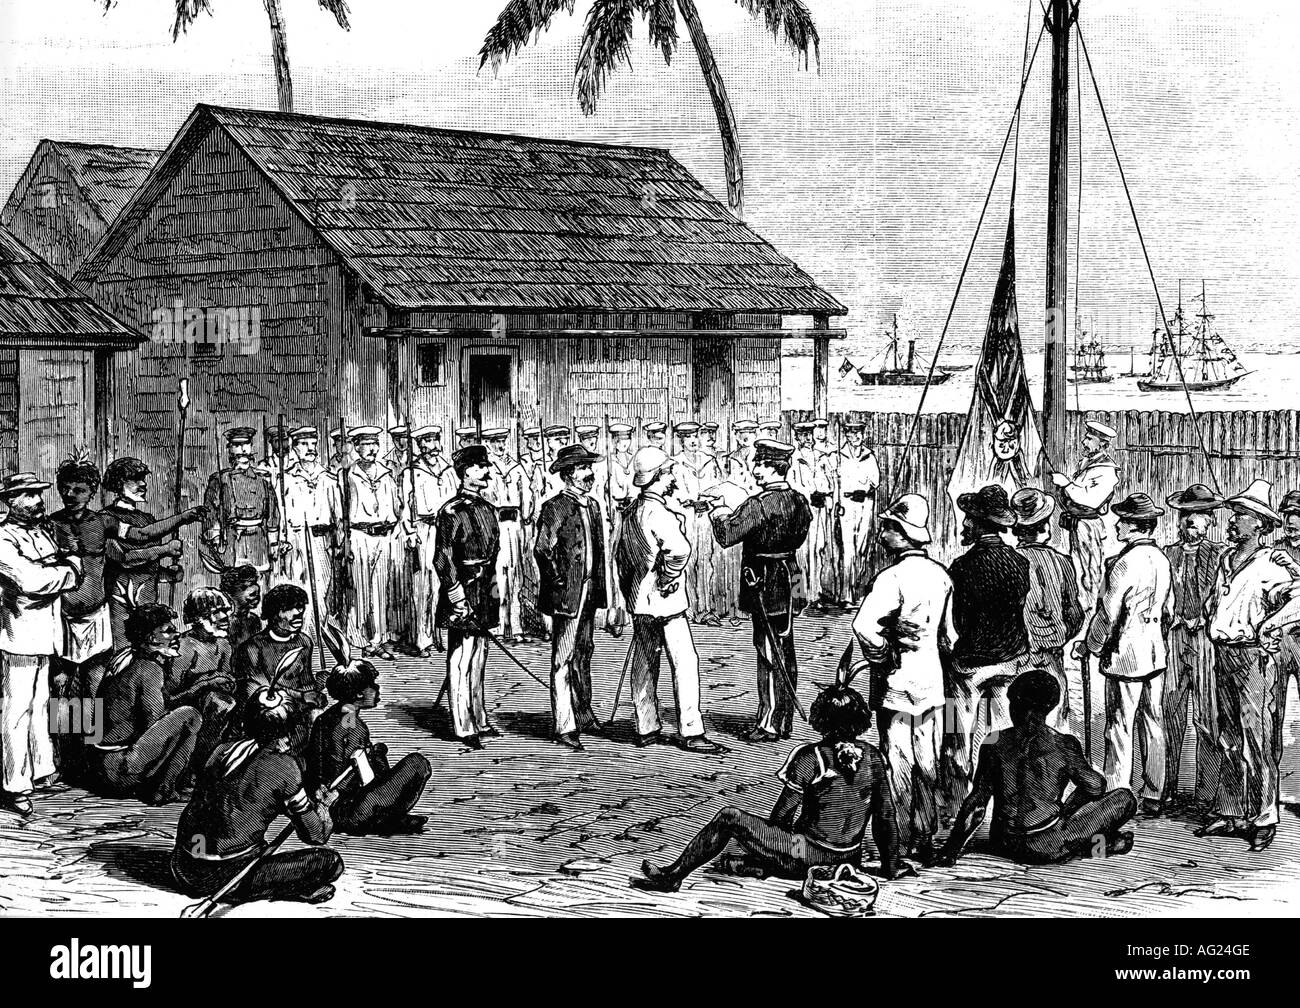 colonialism, German colony Deutsch-Neuguinea, hoisting the German flag in Mioko, Duke of York Island, Bismarck Archipelago, 4.11.1884, Additional-Rights-Clearances-NA - Stock Image